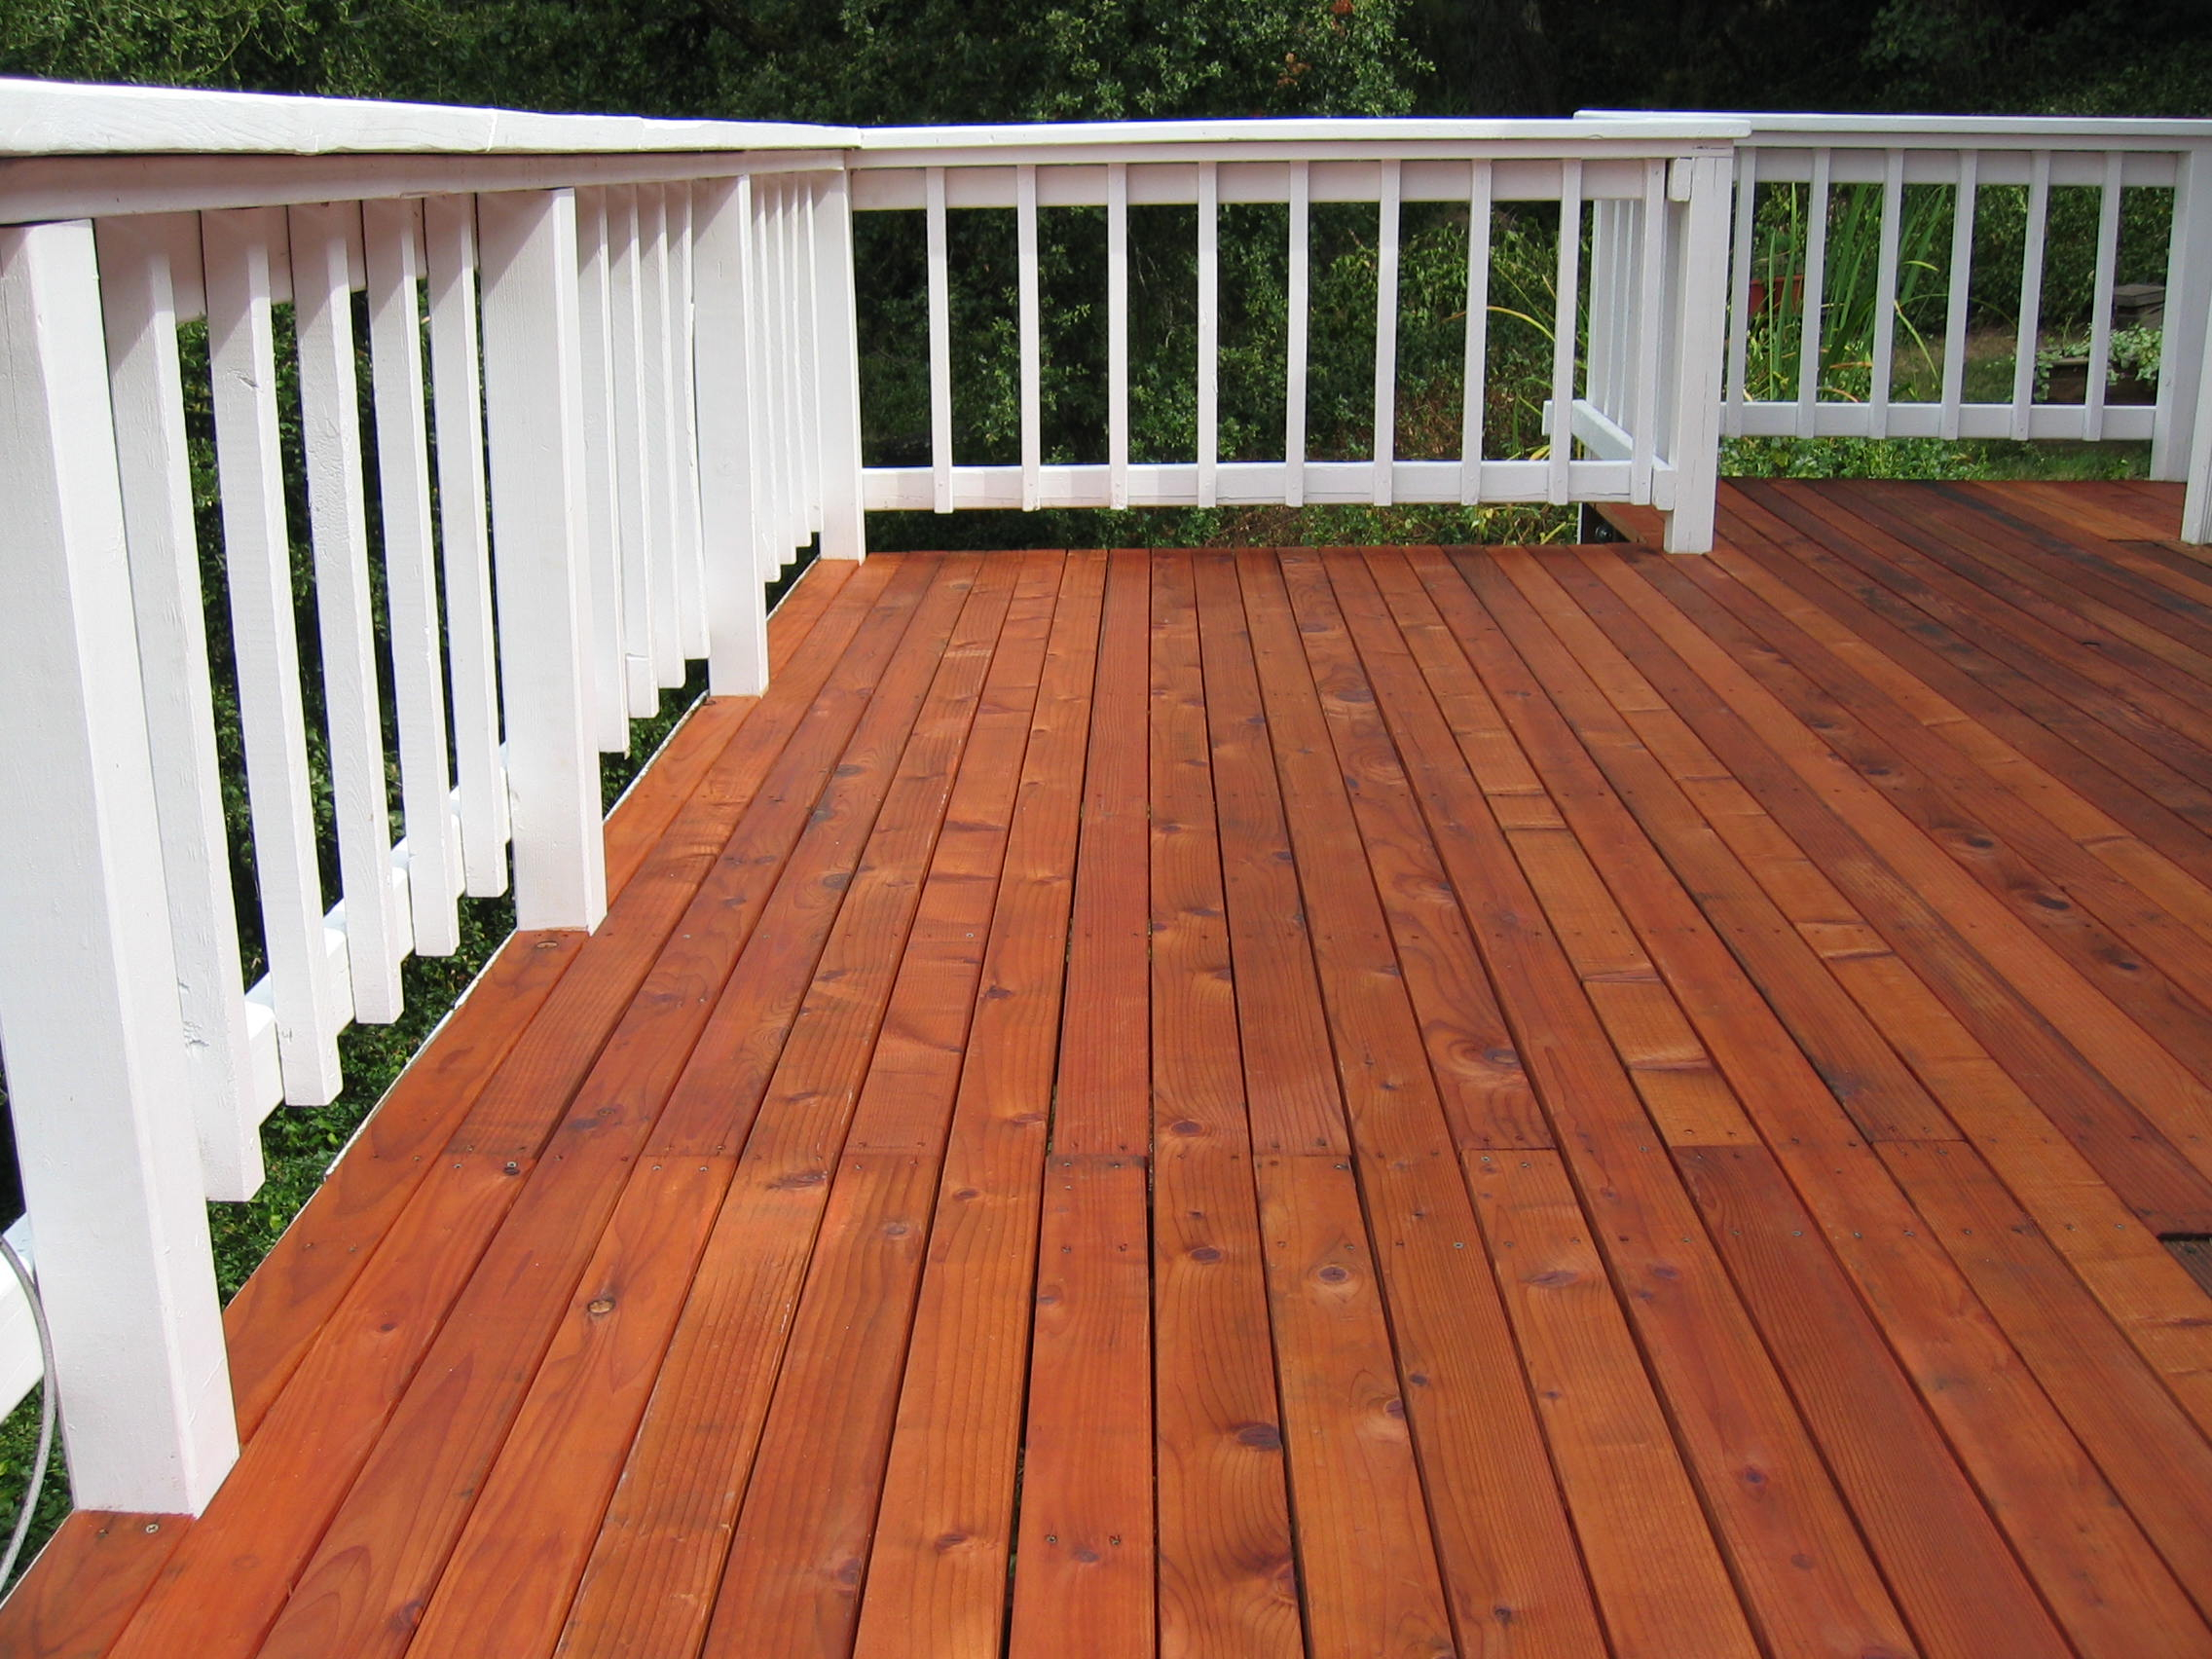 4 Important Steps To Stain A Deck That Is Made With New Boards pertaining to dimensions 2272 X 1704